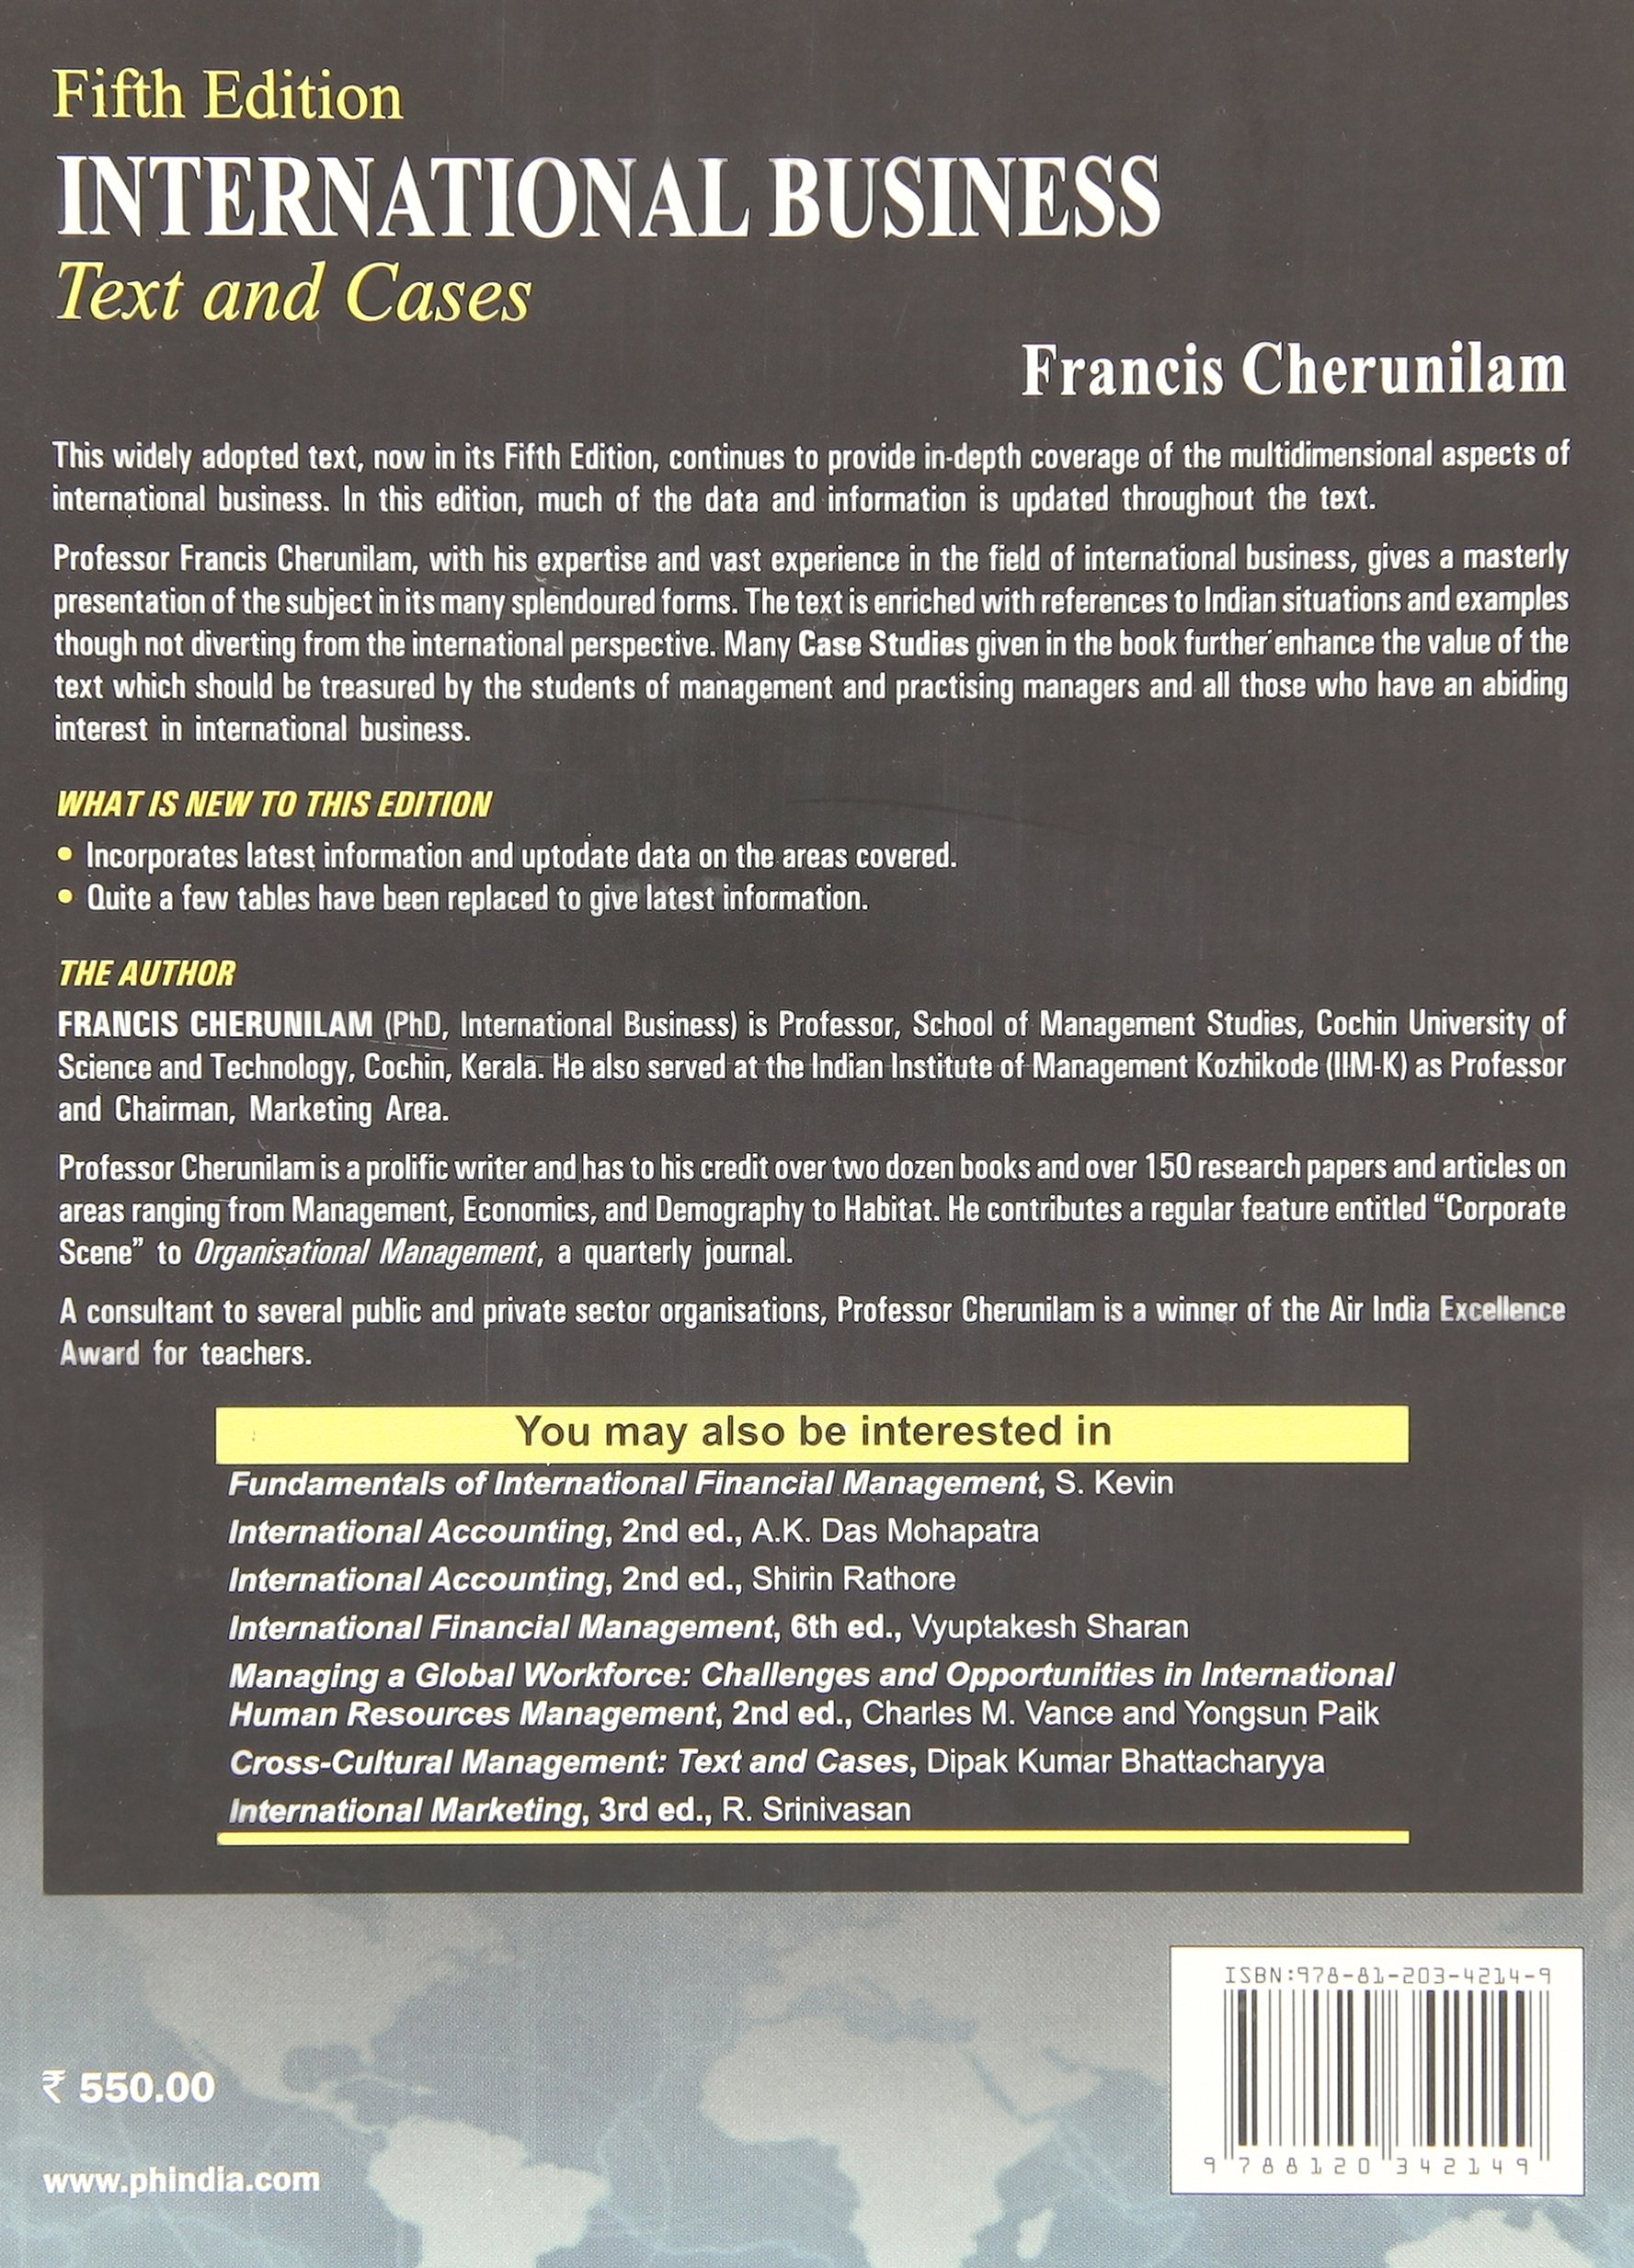 international business text and cases francis cherunilam  international business text and cases francis cherunilam 9788120342149 com books